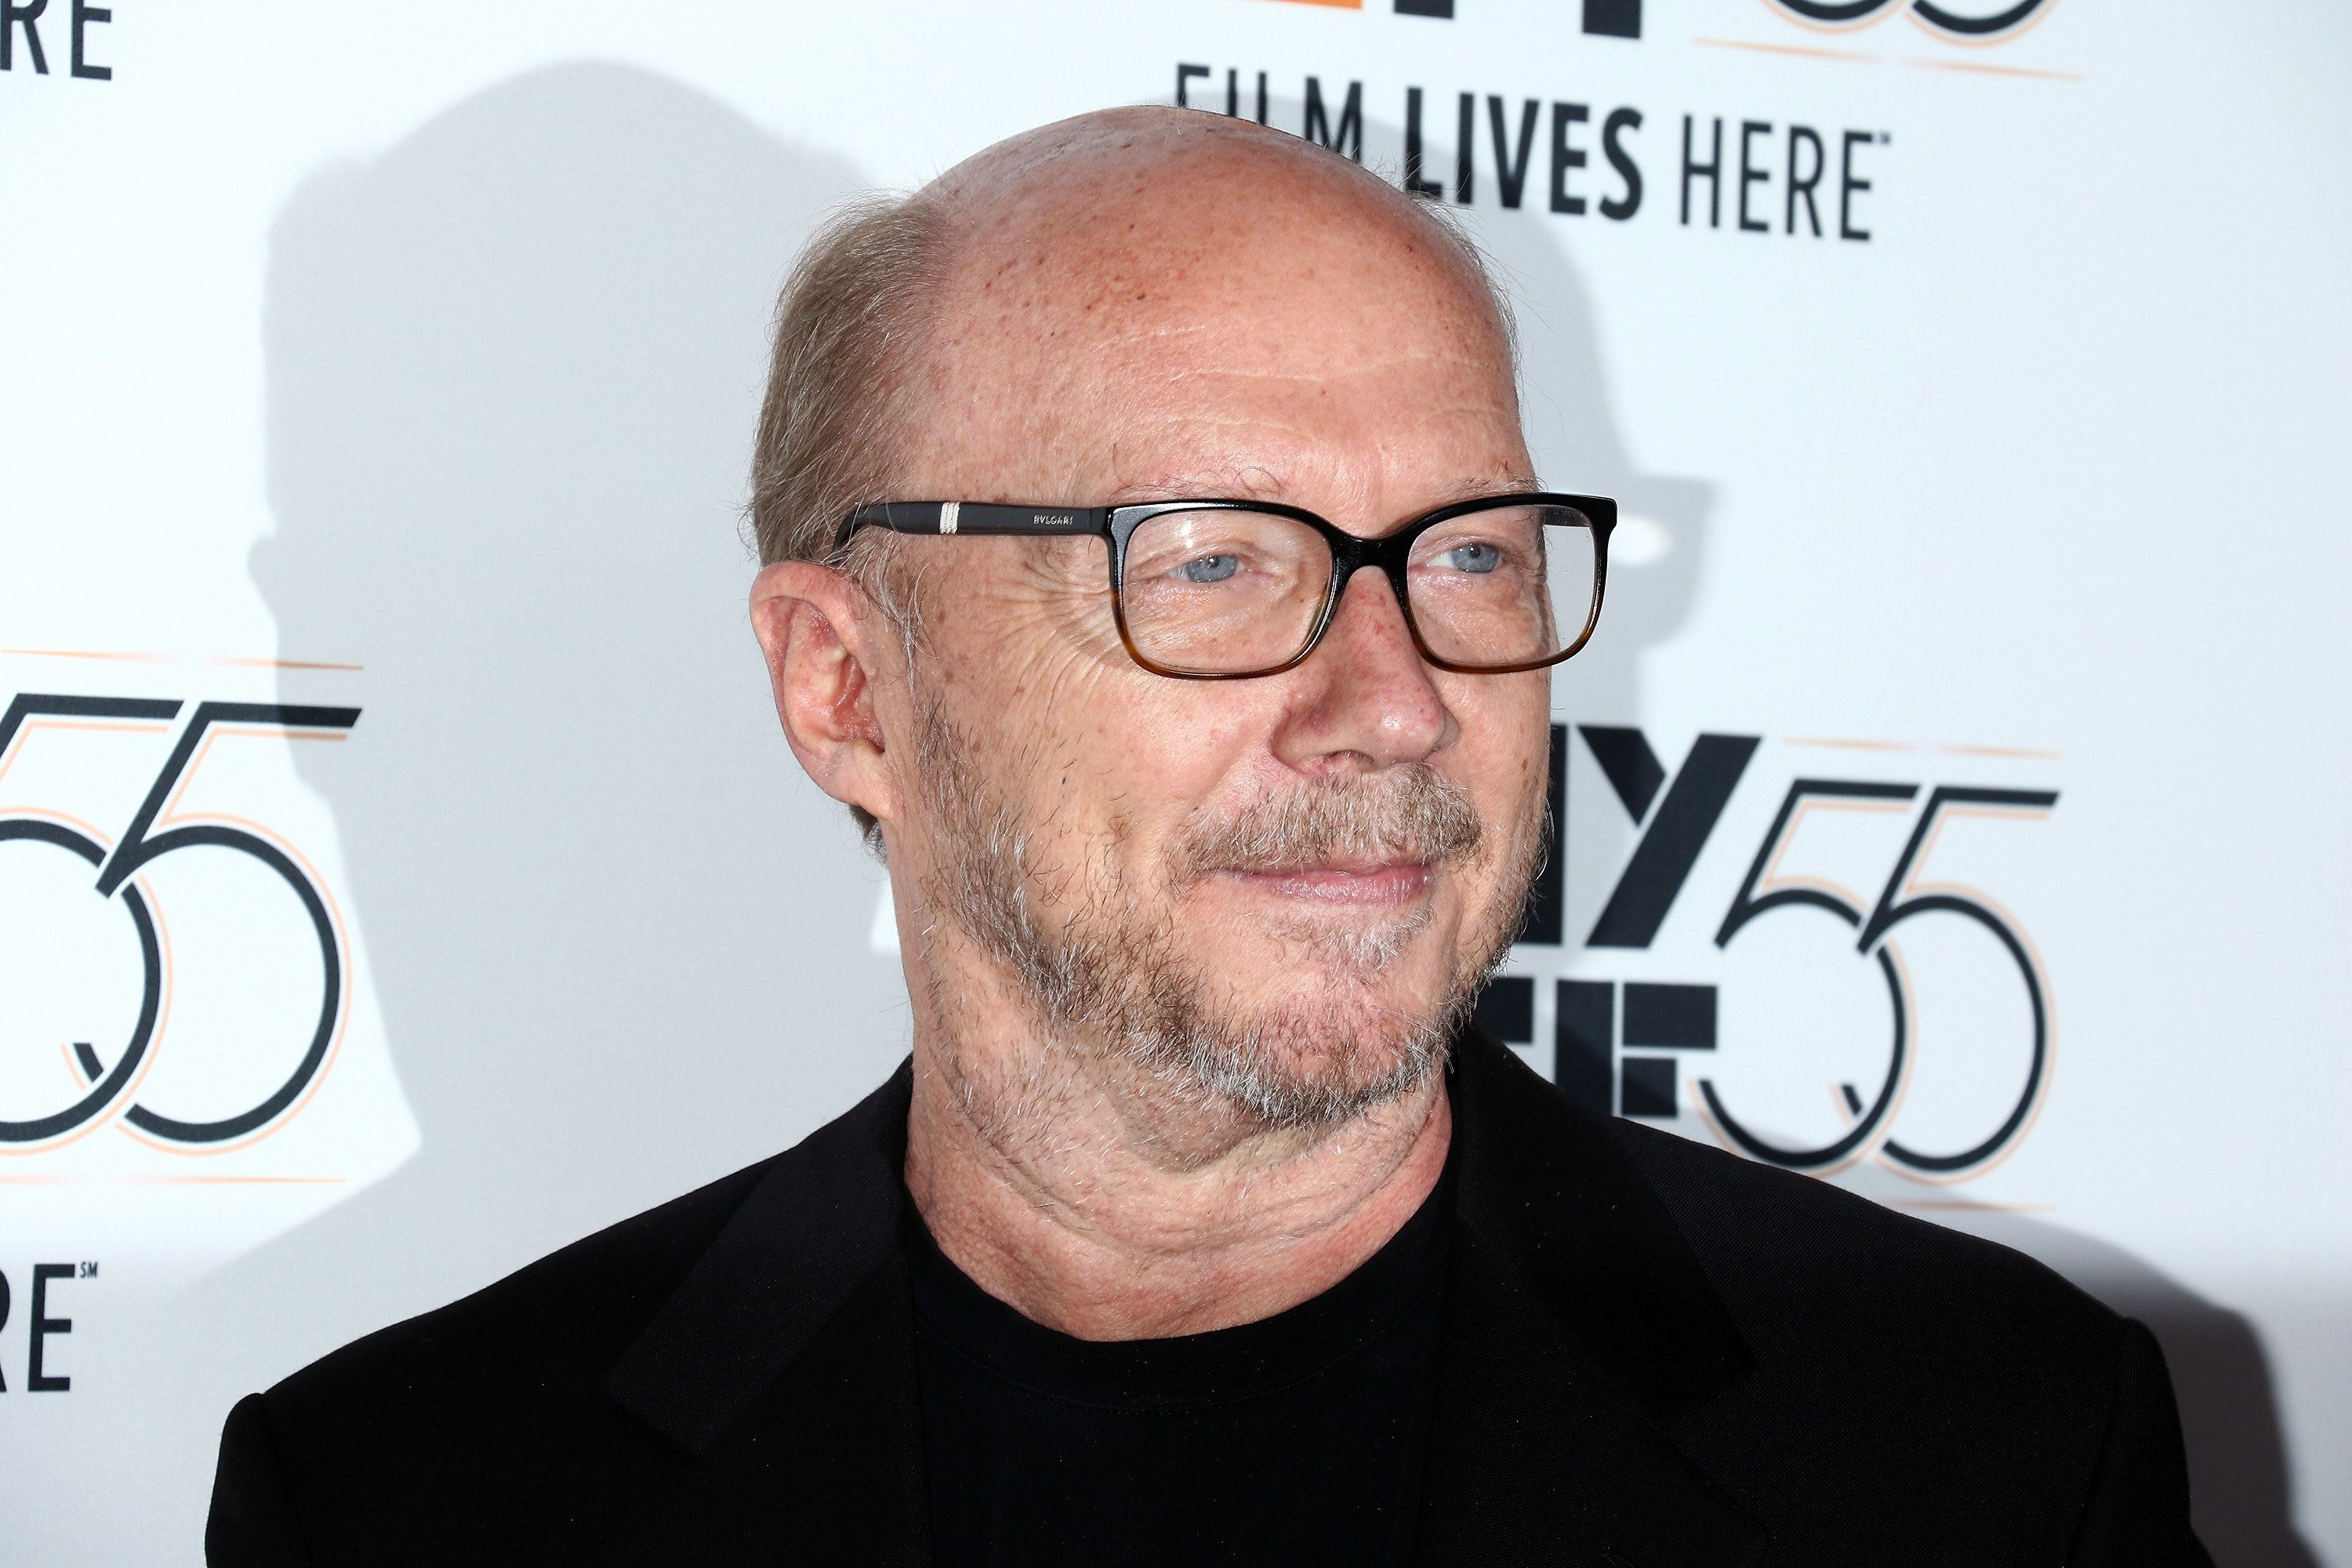 Women come forward with sexual allegations against filmmaker Paul Haggis